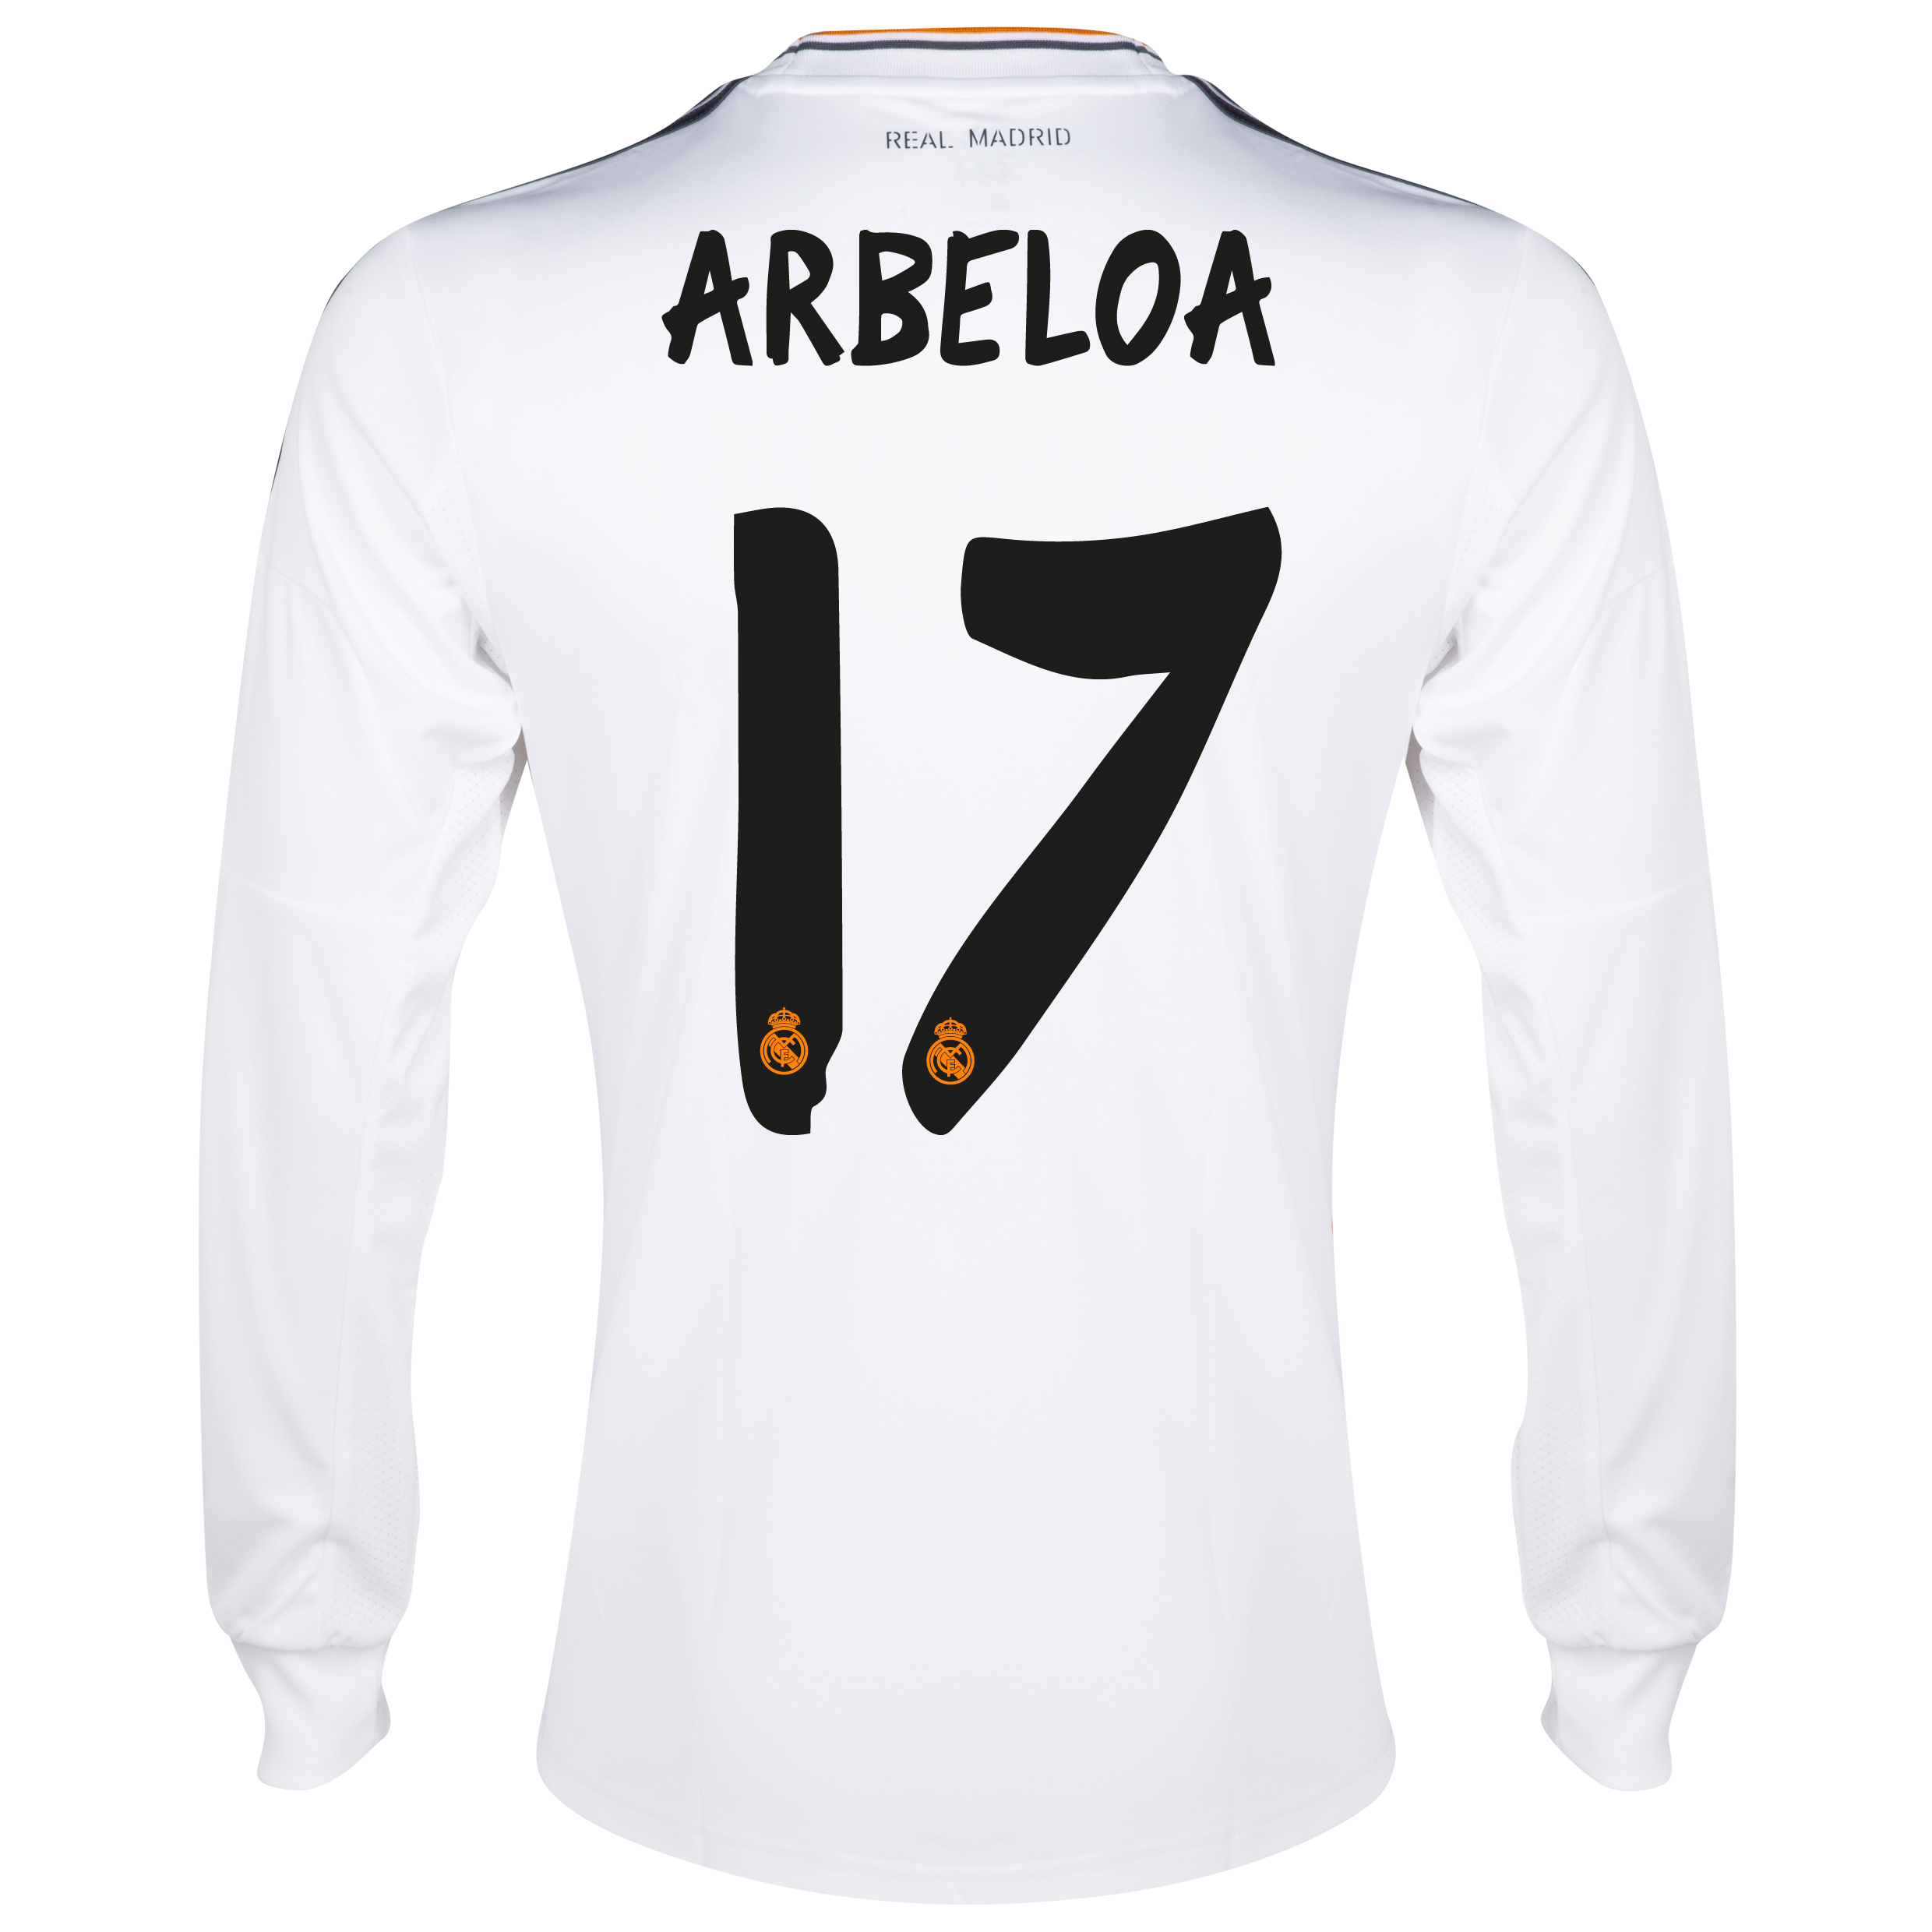 Real Madrid Home Shirt 2013/14 - Long Sleeve with Arbeloa 17 printing